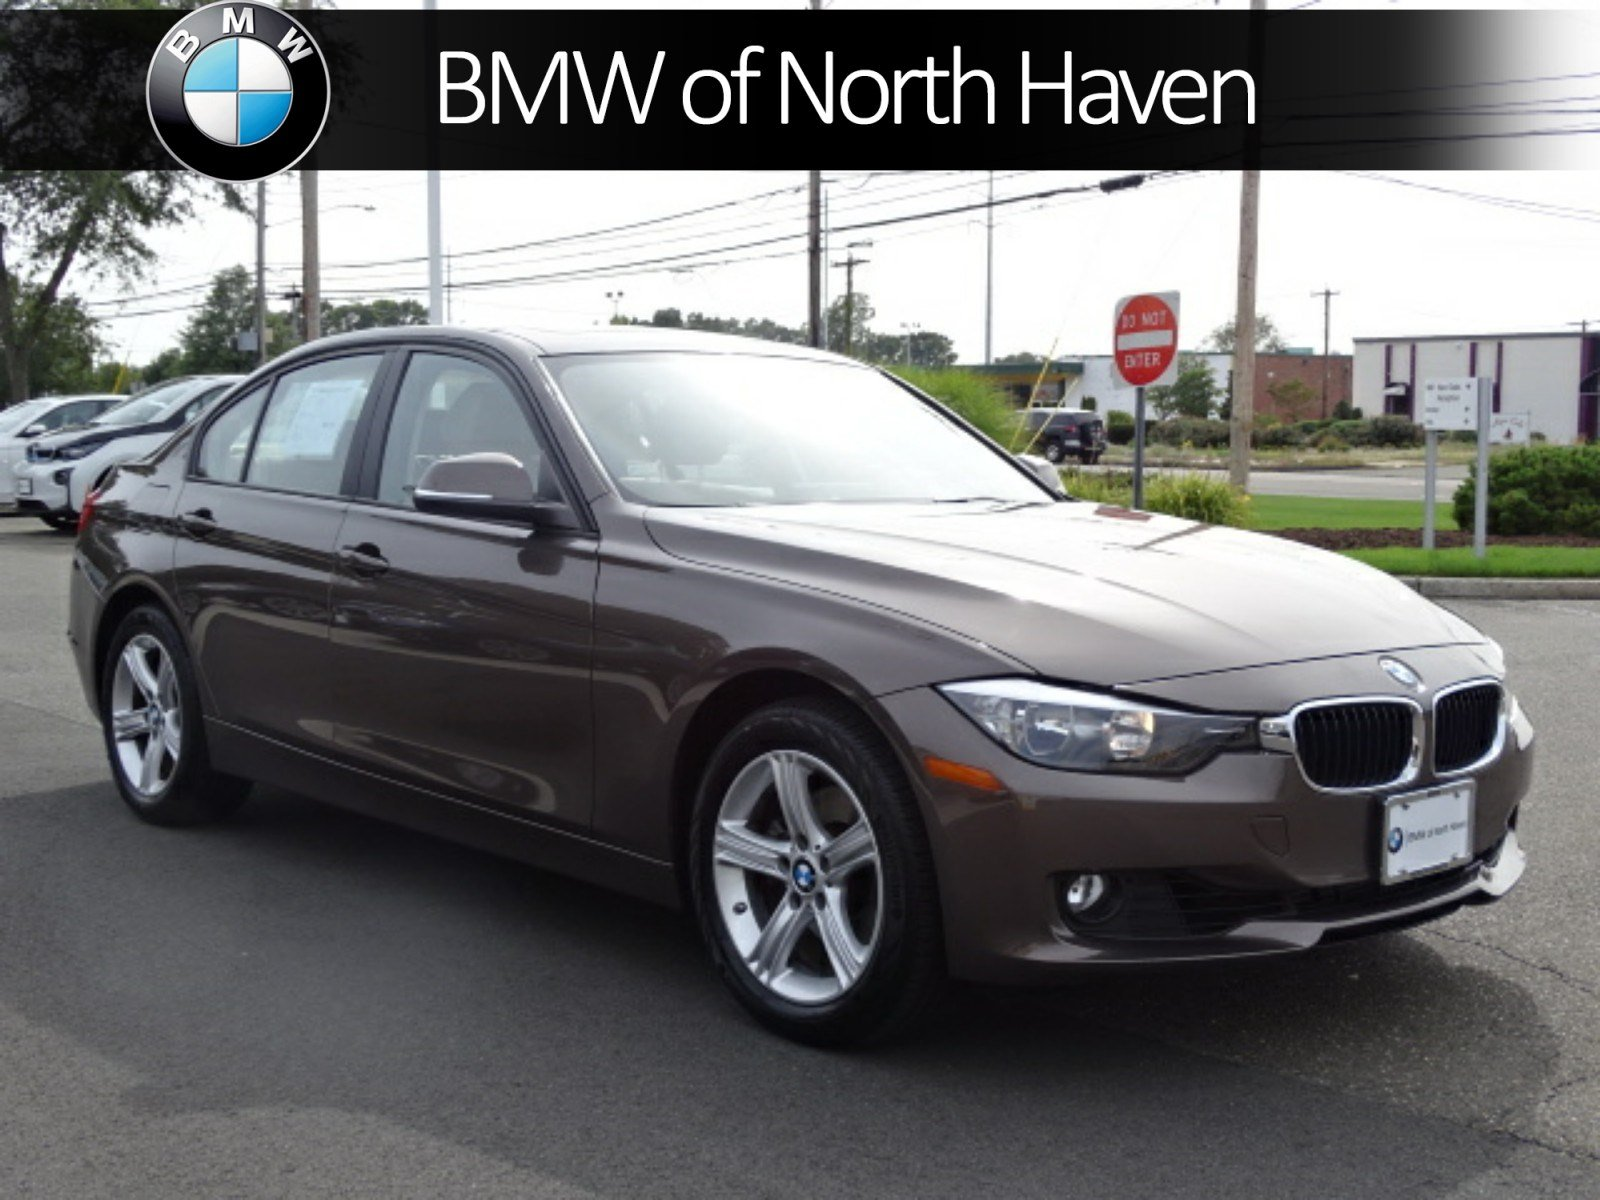 PreOwned BMW Series I XDrive Dr Car In North Haven - Bmw 328i coupe 2014